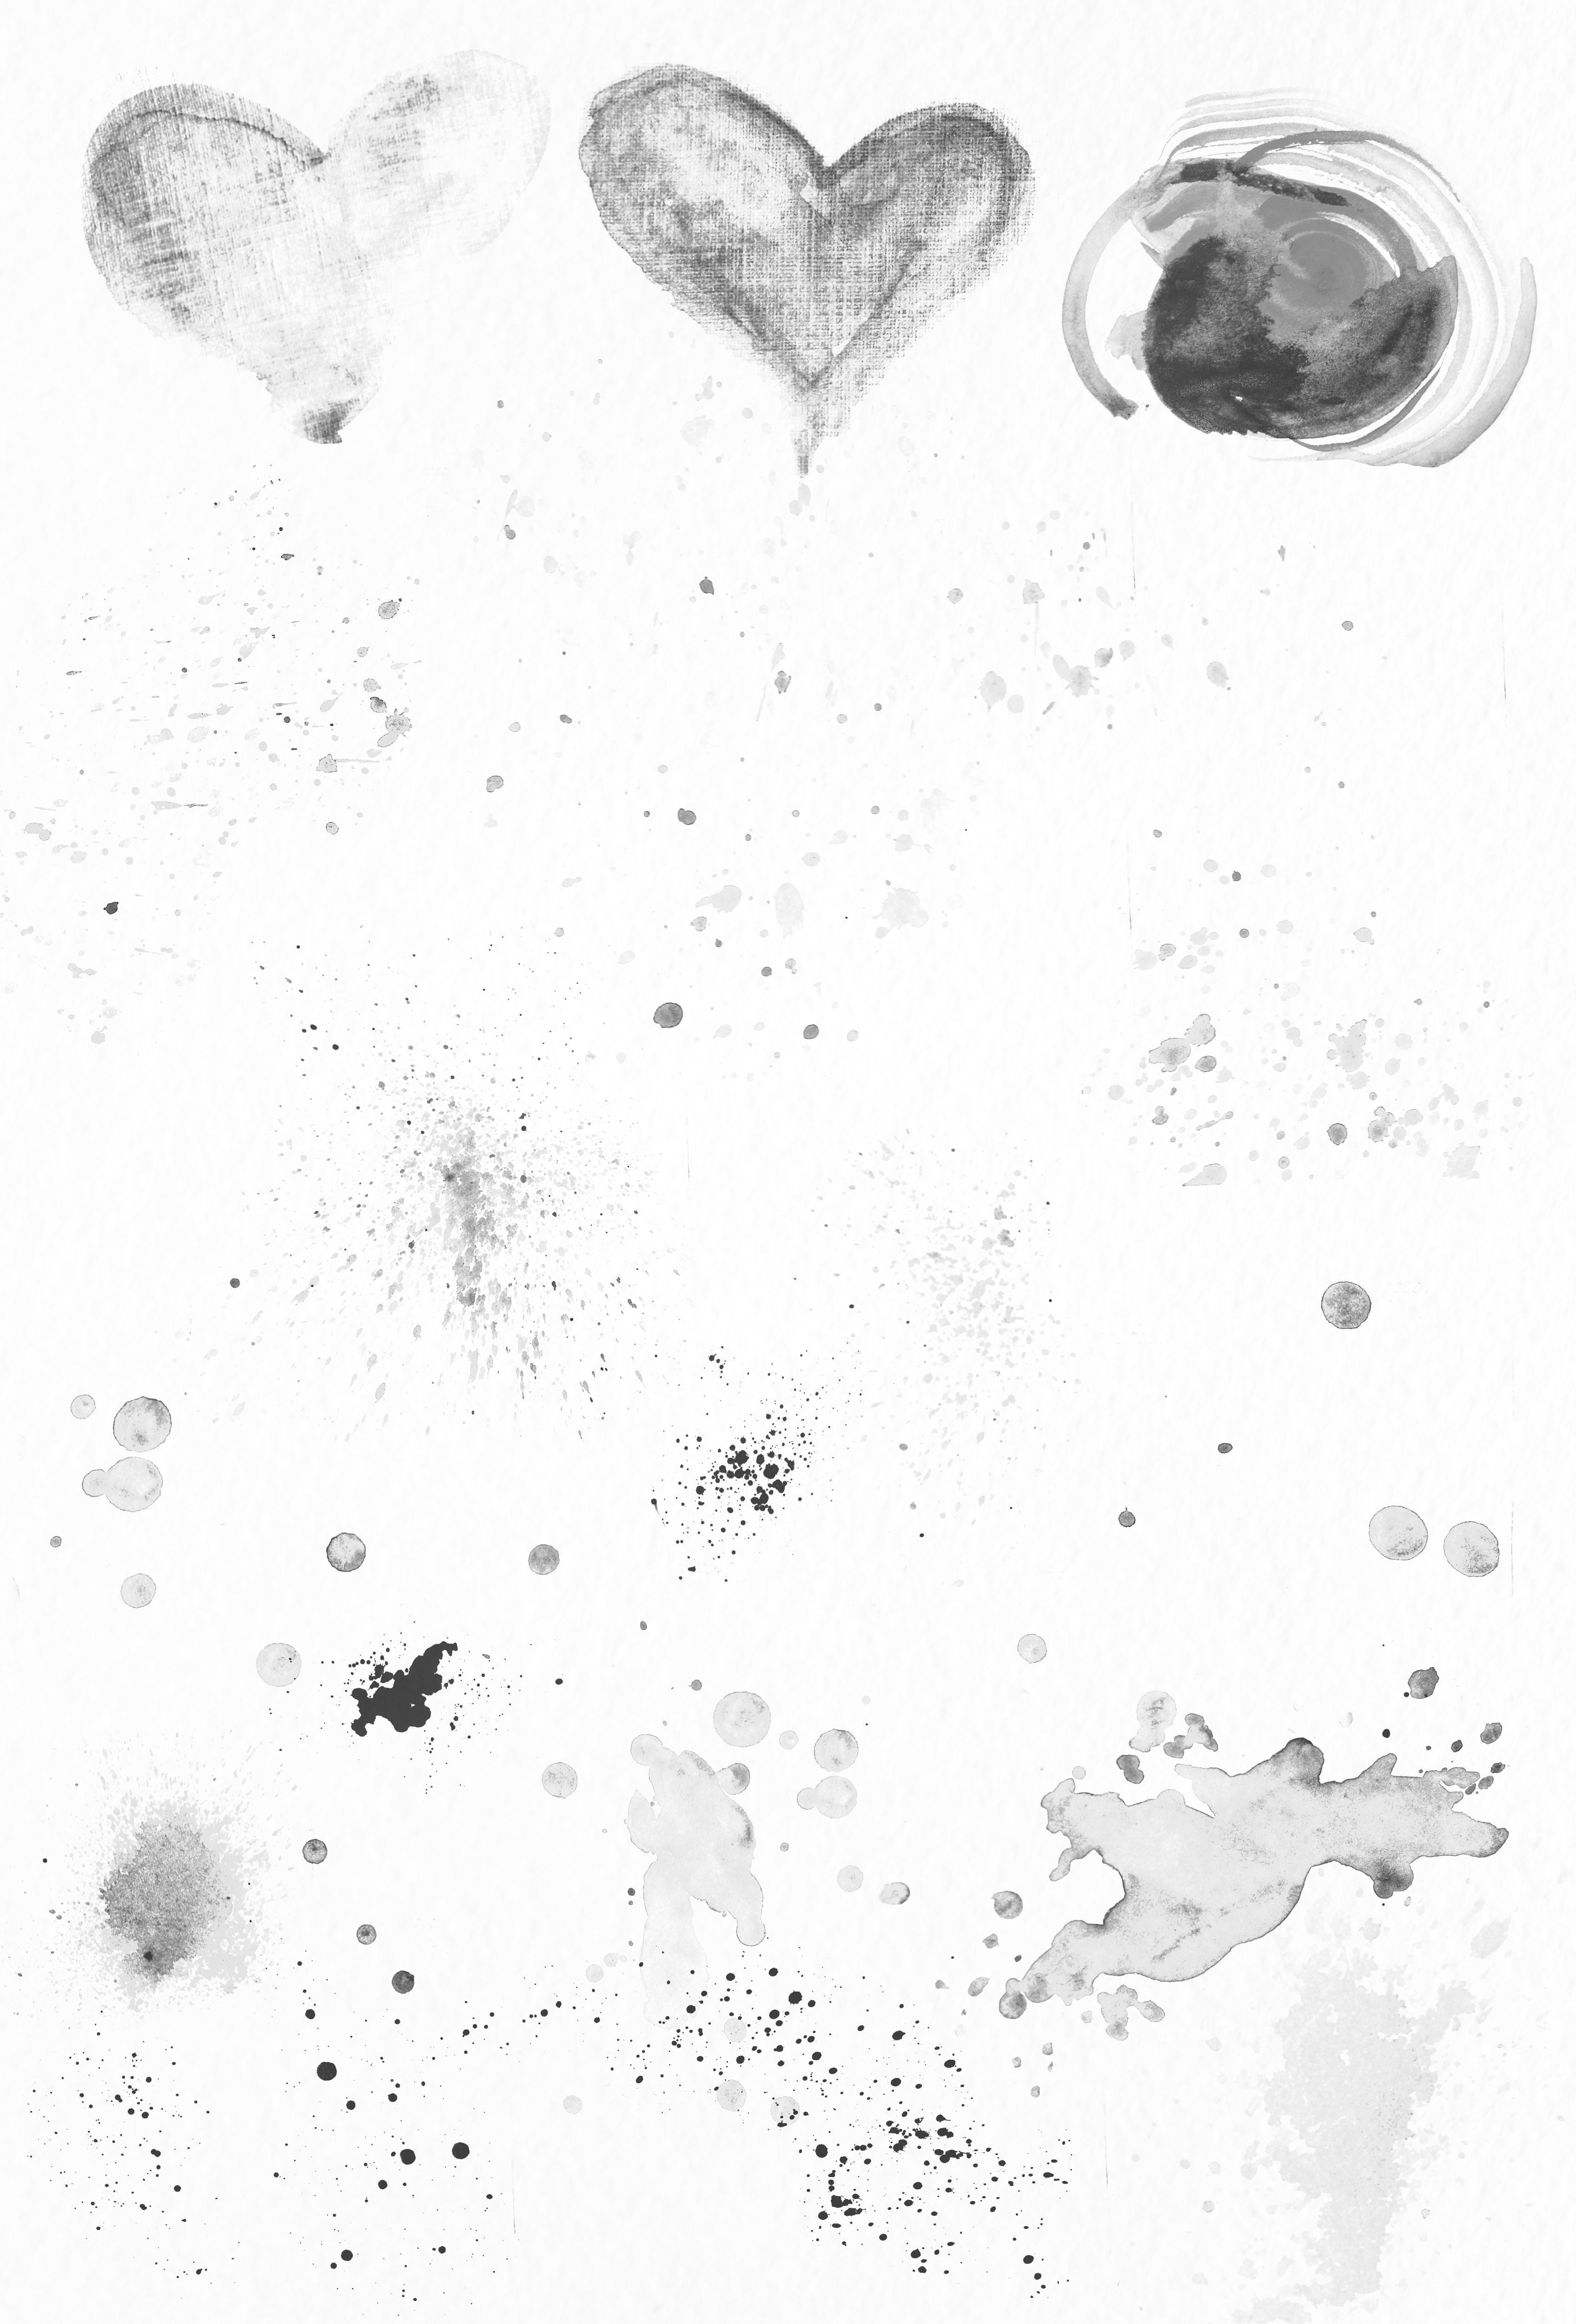 90 Photoshop Watercolour Brushes #paper#scanned#created#scratch